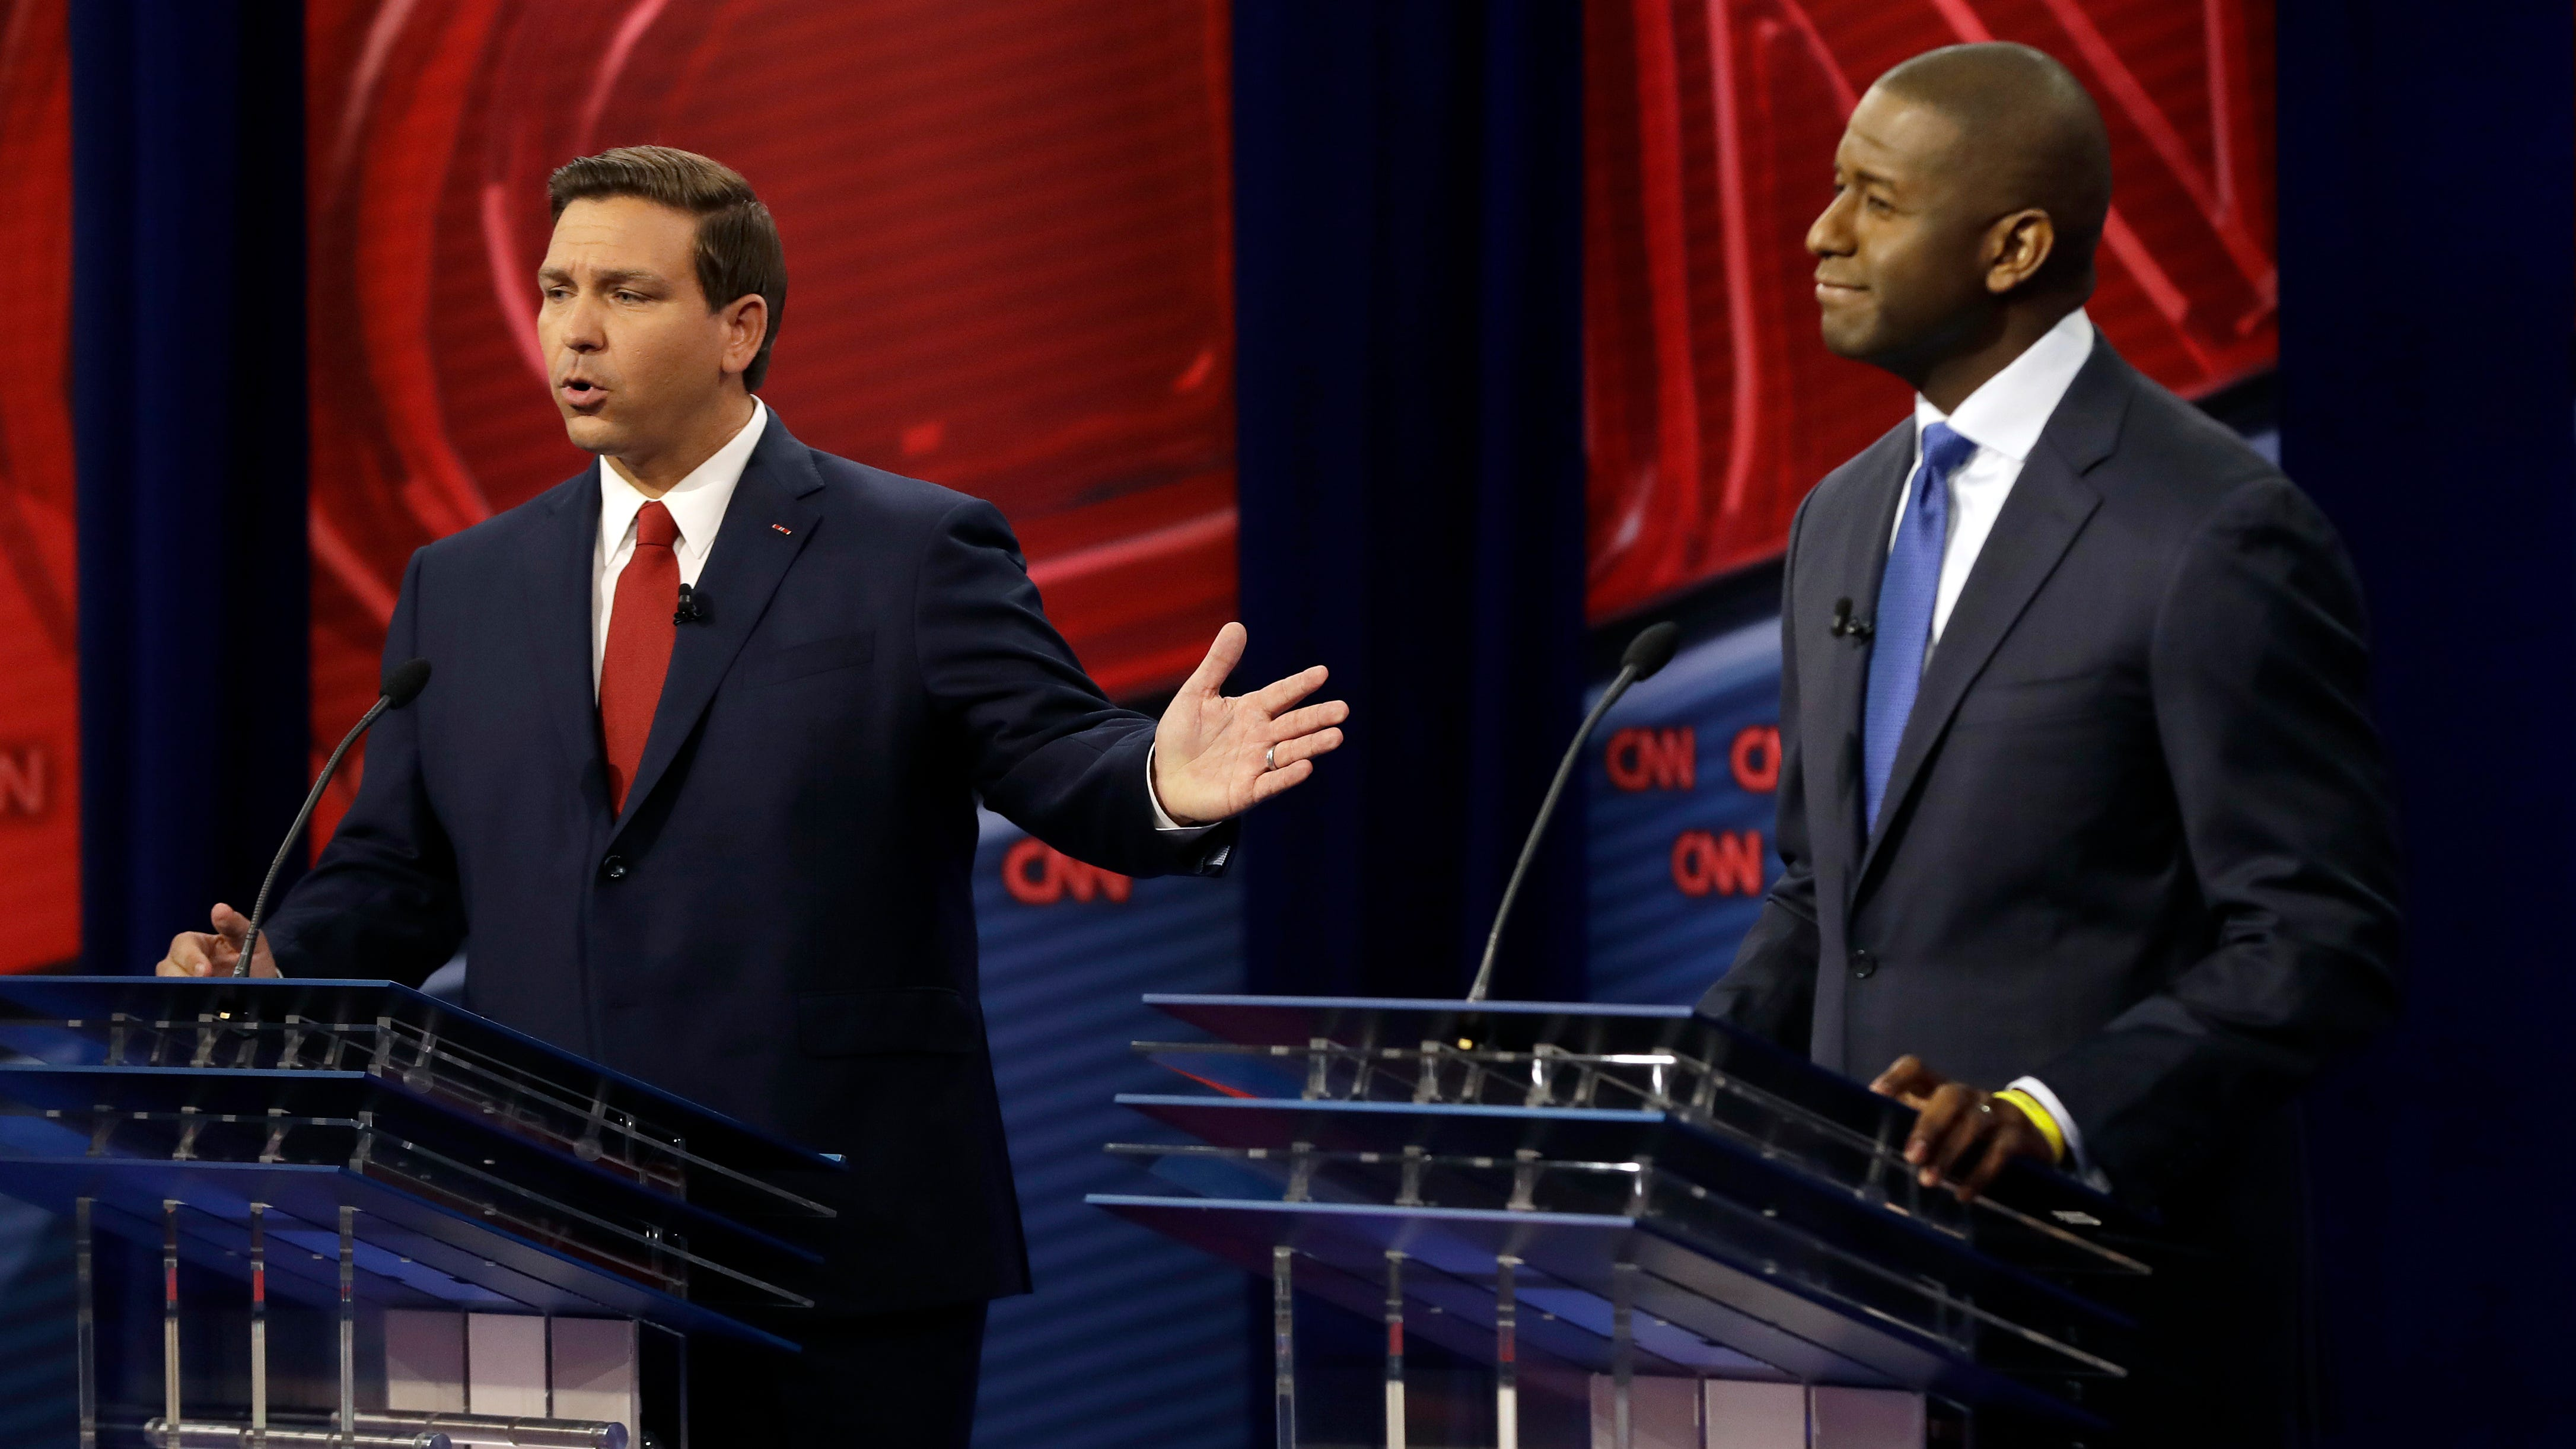 Florida Republican gubernatorial candidate Ron DeSantis, left, speaks about his Democratic opponent Andrew Gillum during a CNN debate, Sunday, Oct. 21, 2018, in Tampa, Fla. (AP Photo/Chris O'Meara)